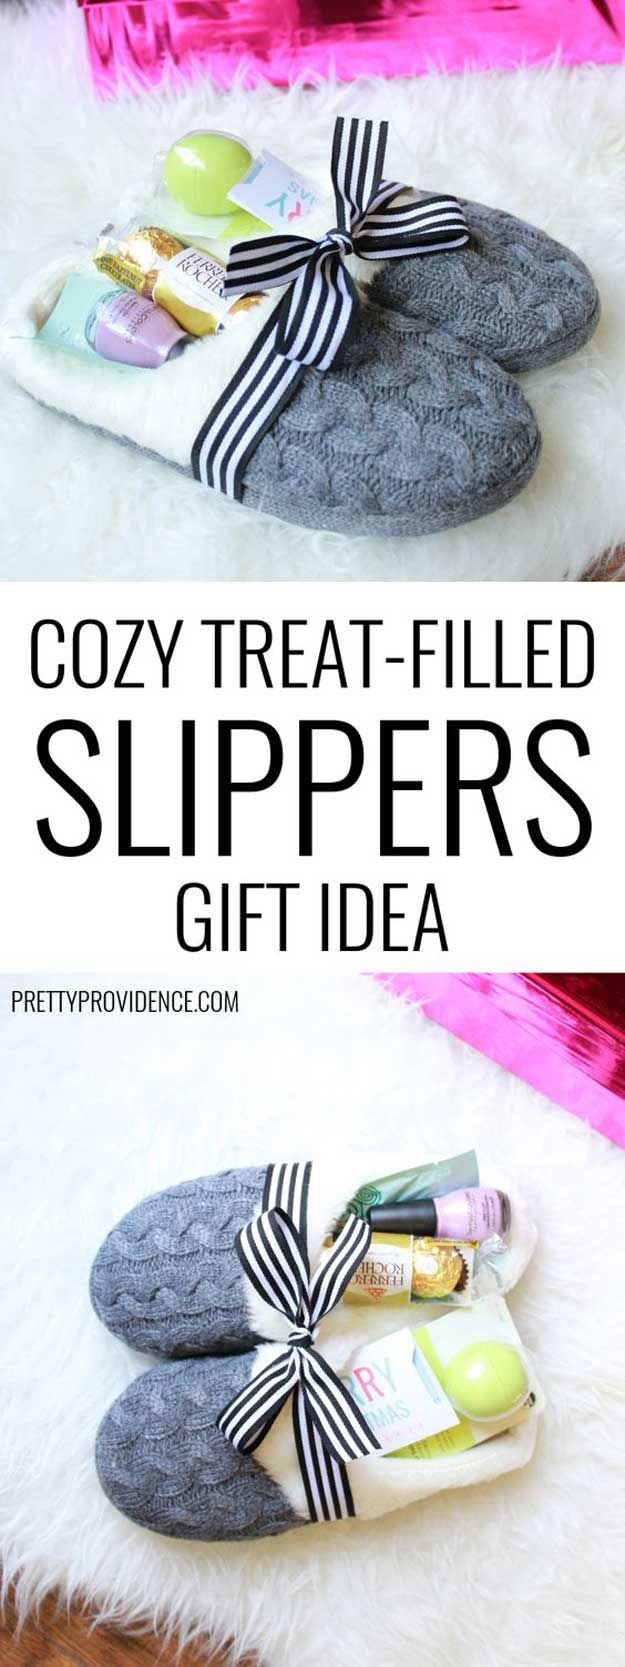 Fun Gift Ideas For Girlfriends  Cute Gifts to Make For Her